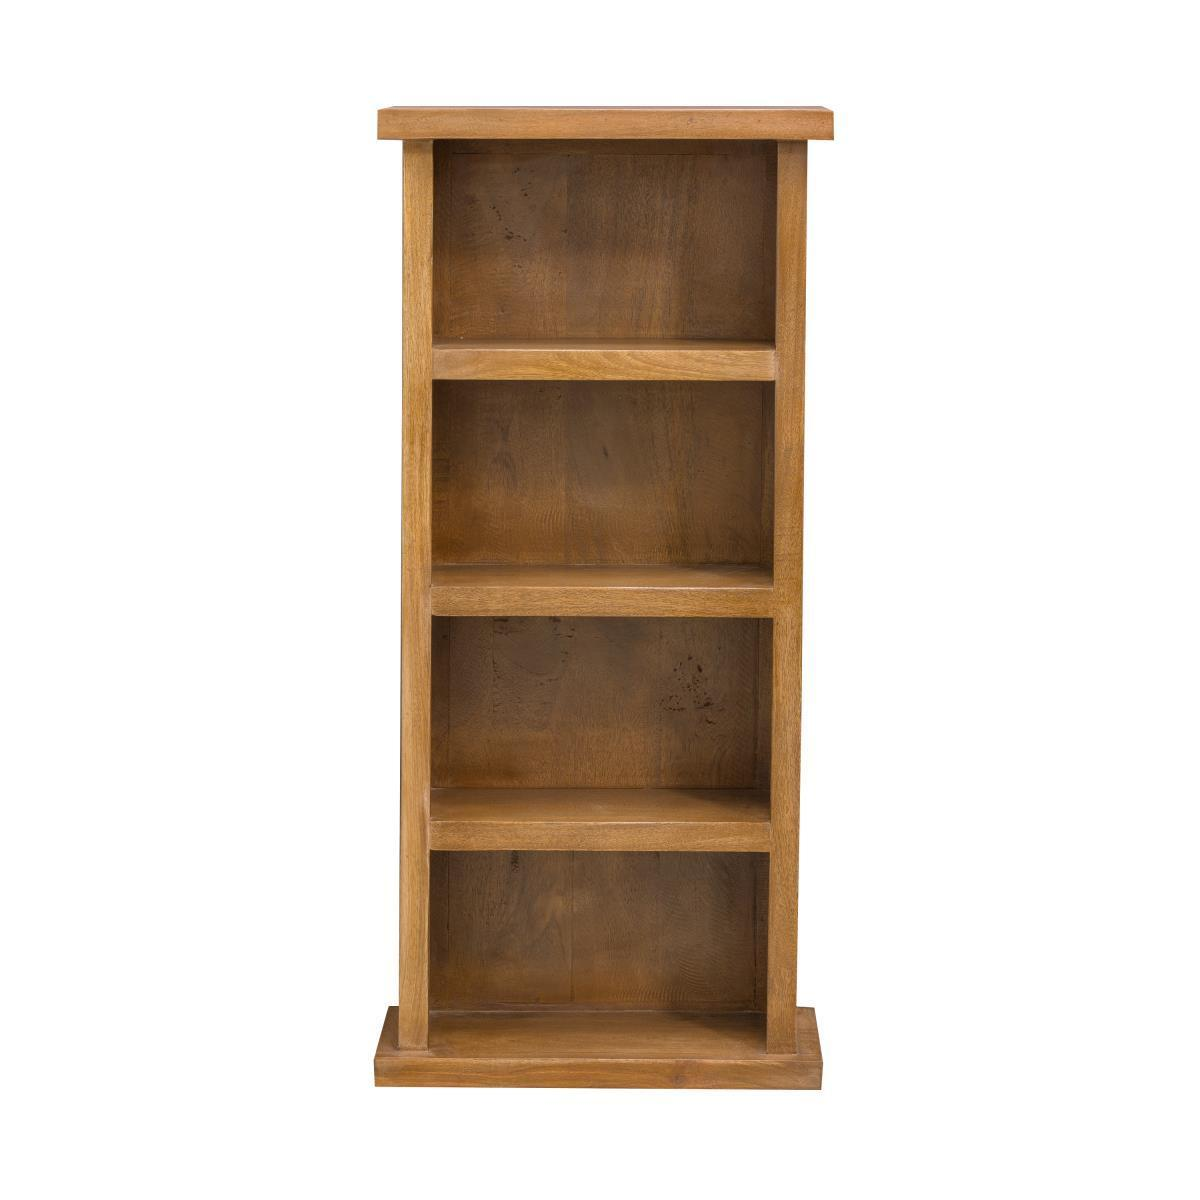 MYAKKA Sundaya Space-Saver Bookcase